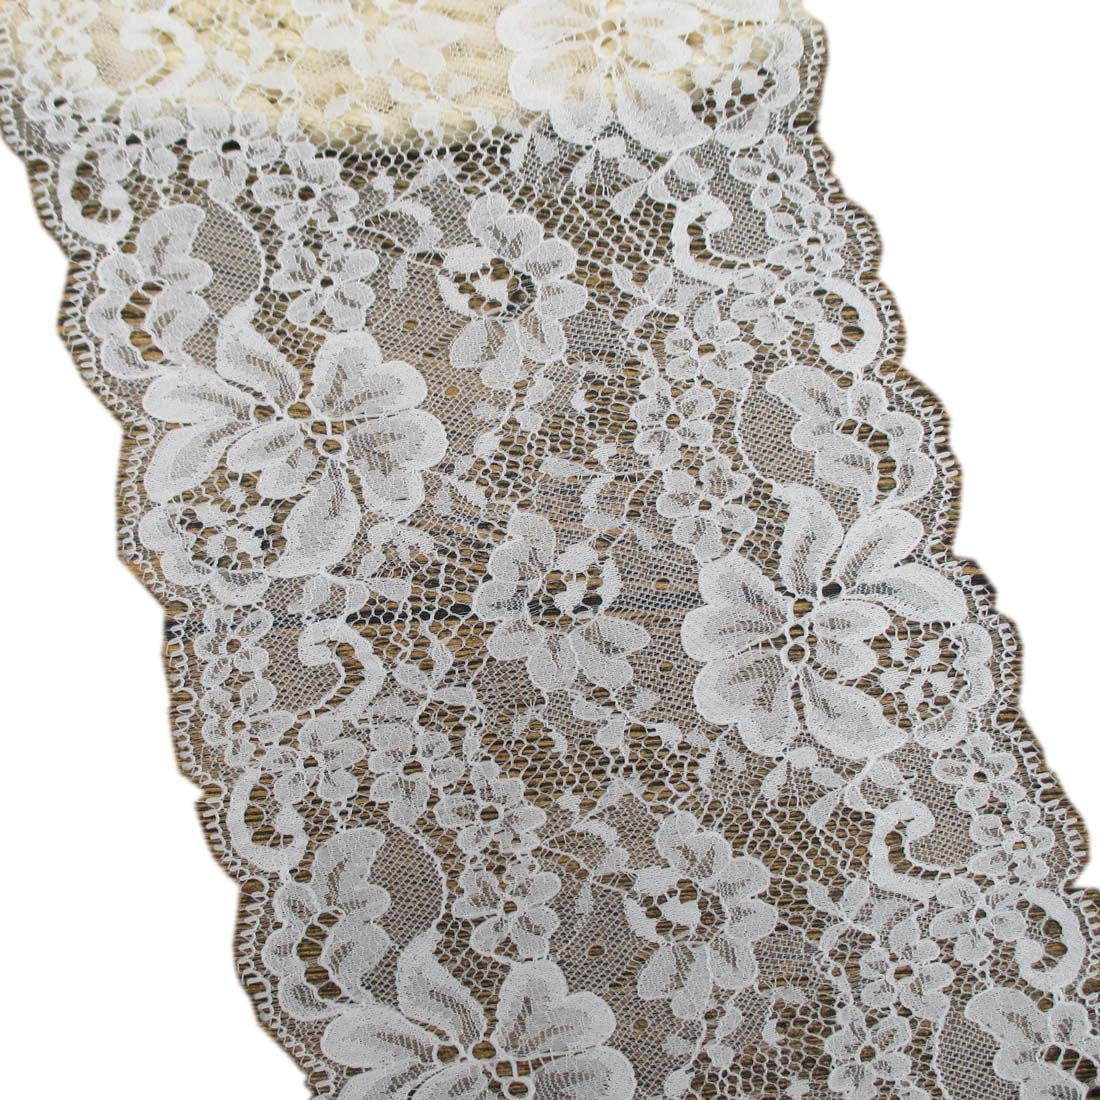 Trimscraft 5-1/2 Inch Wide Lace Trims Fabric for Sewing Home Decoration Wedding Accessory Pack of 10 Yards